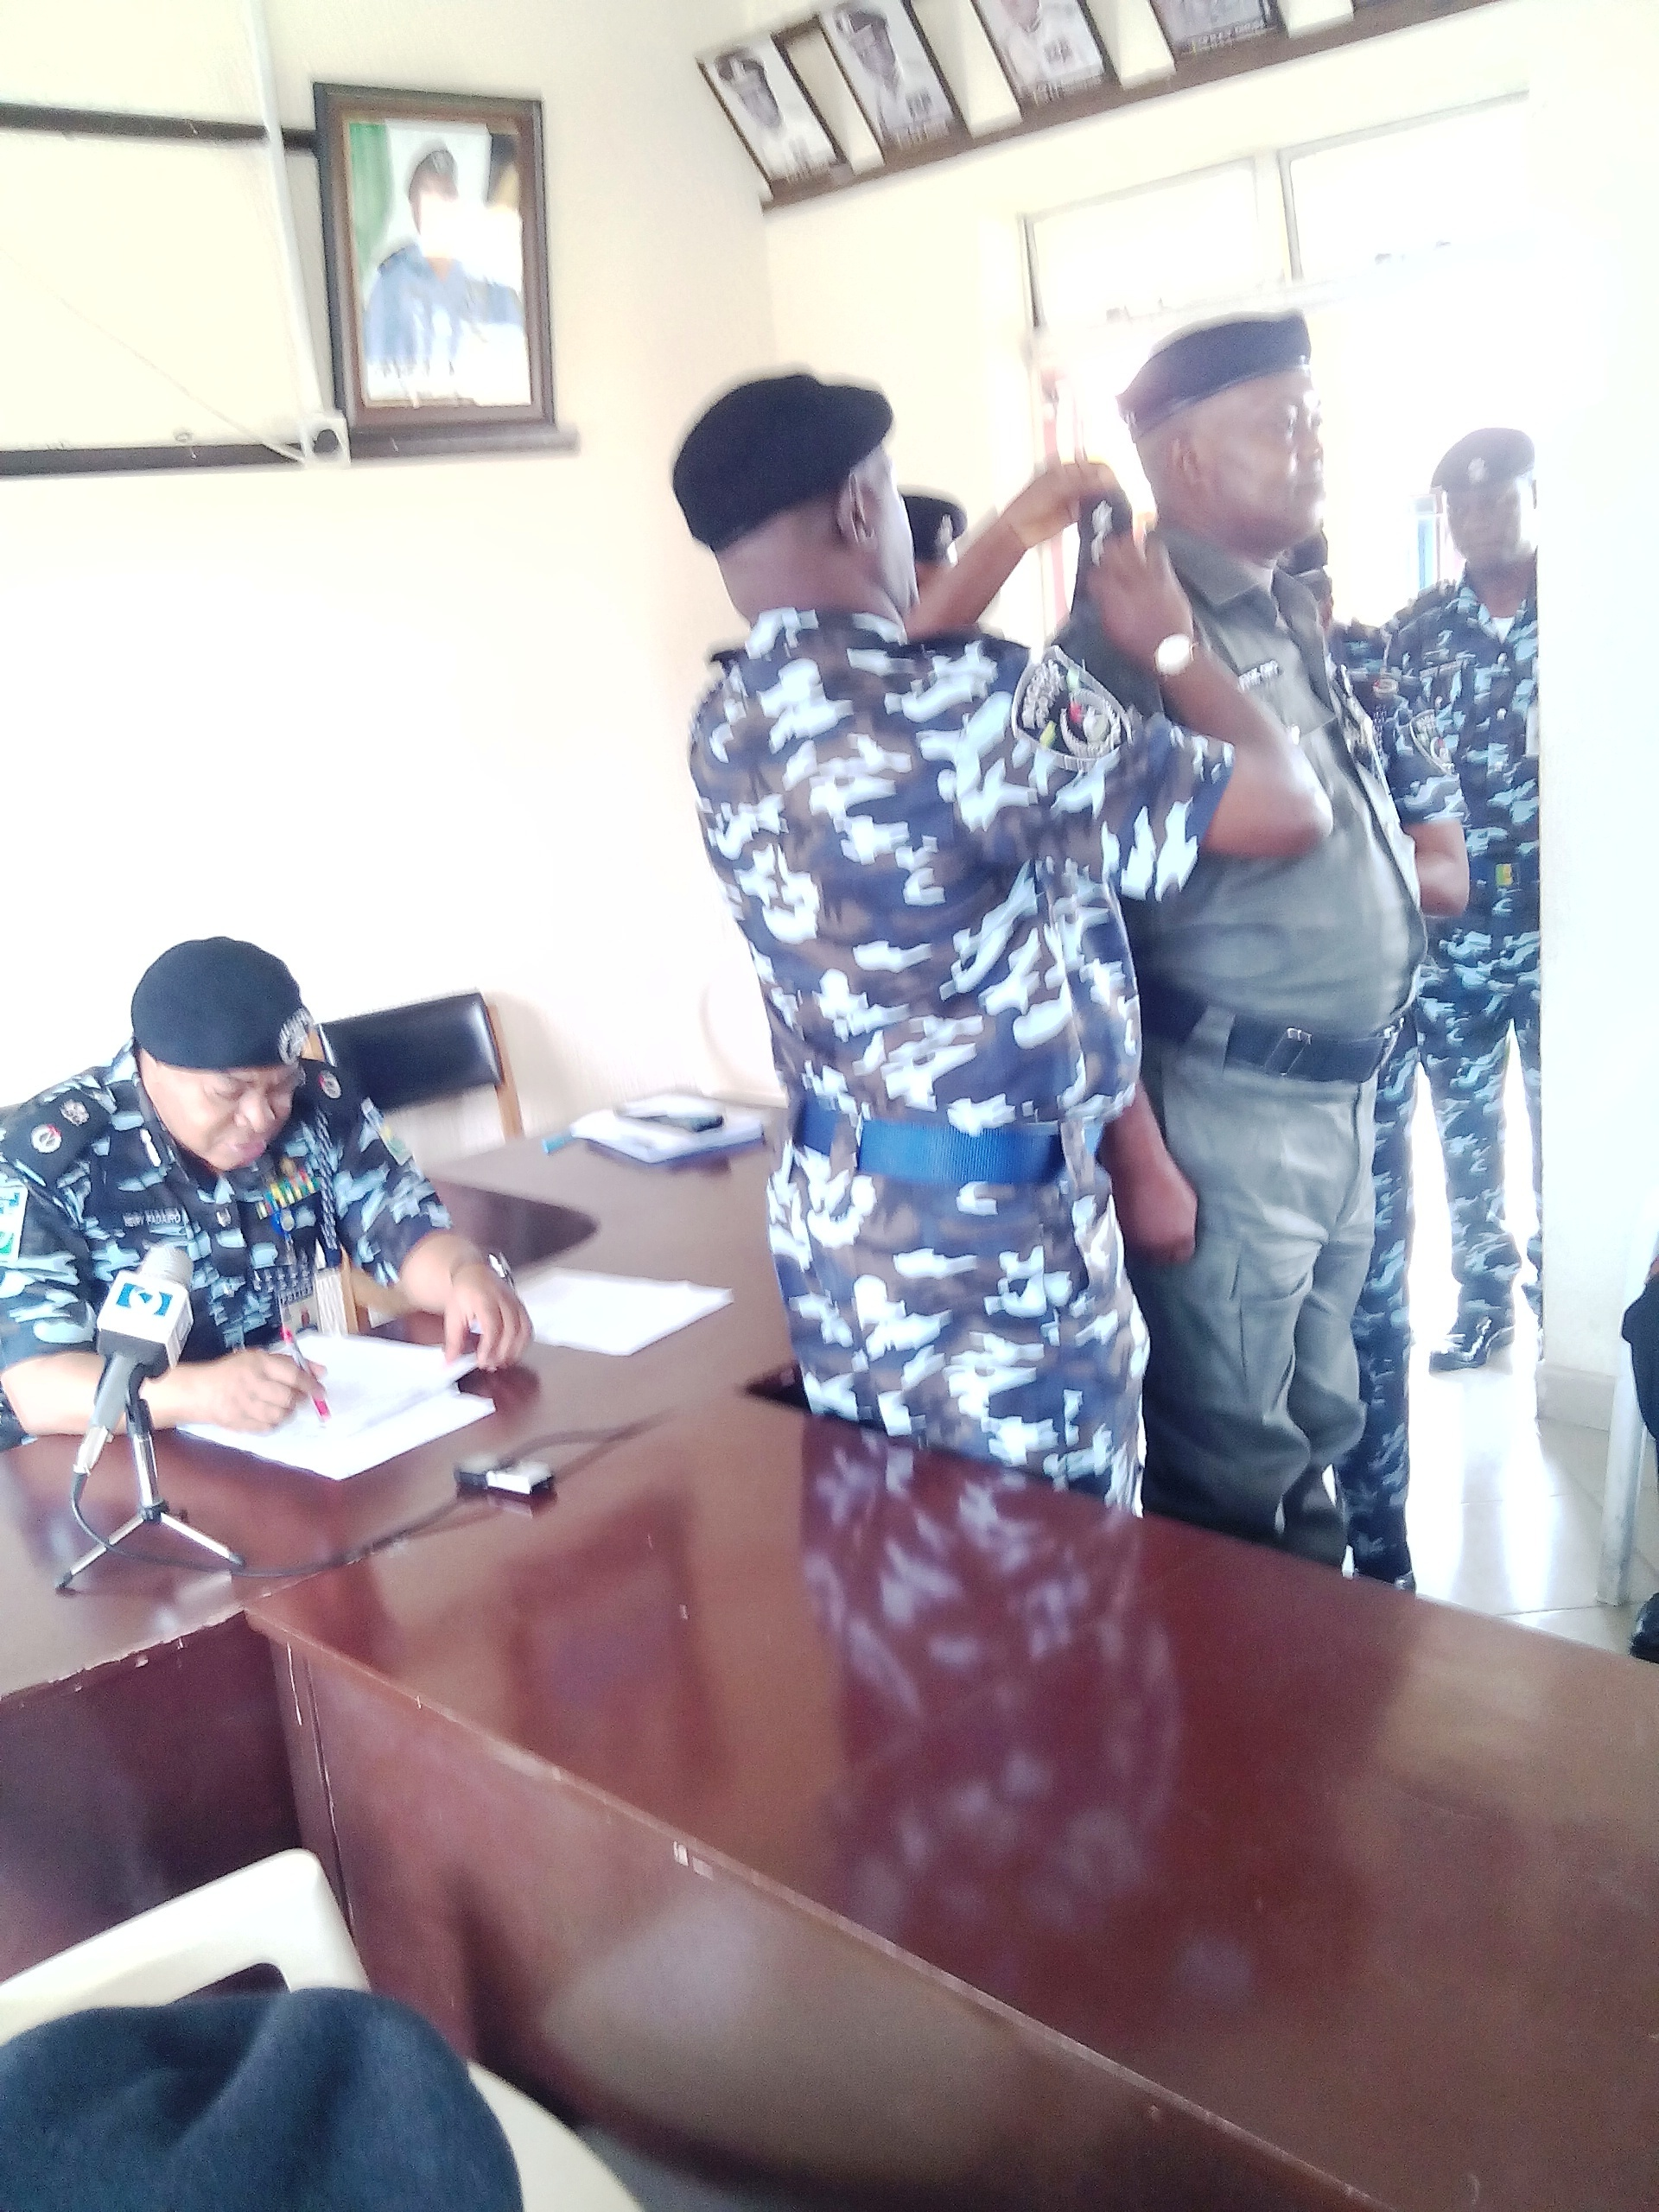 The Commissioner (left) addressing the participants while a senior officer decorates one of the promoted officer